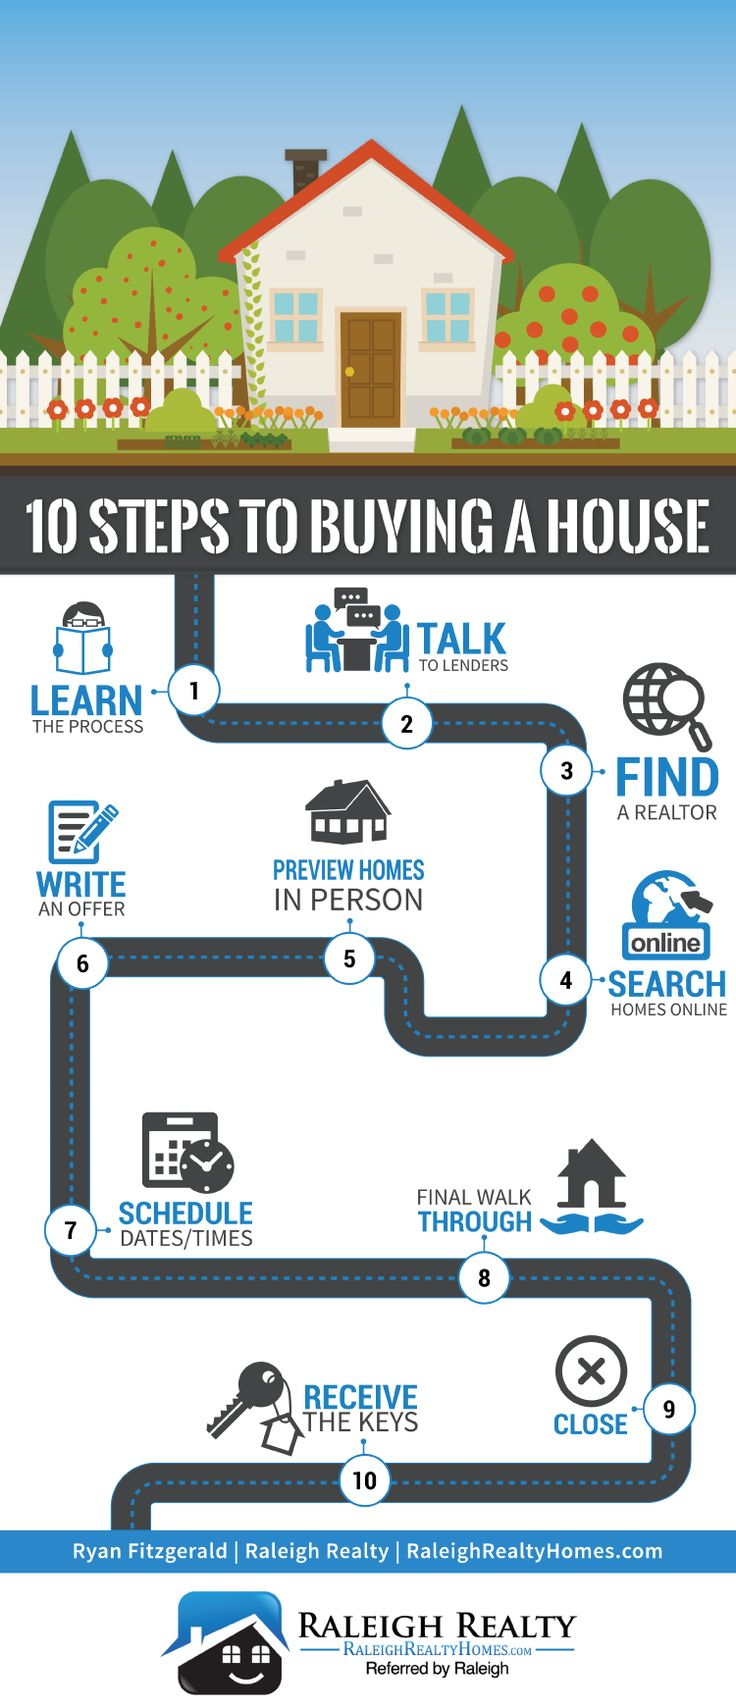 10 Steps to Buying a House: http://www.raleighrealtyhomes.com/blog/10-steps-to-buying-a-house.html